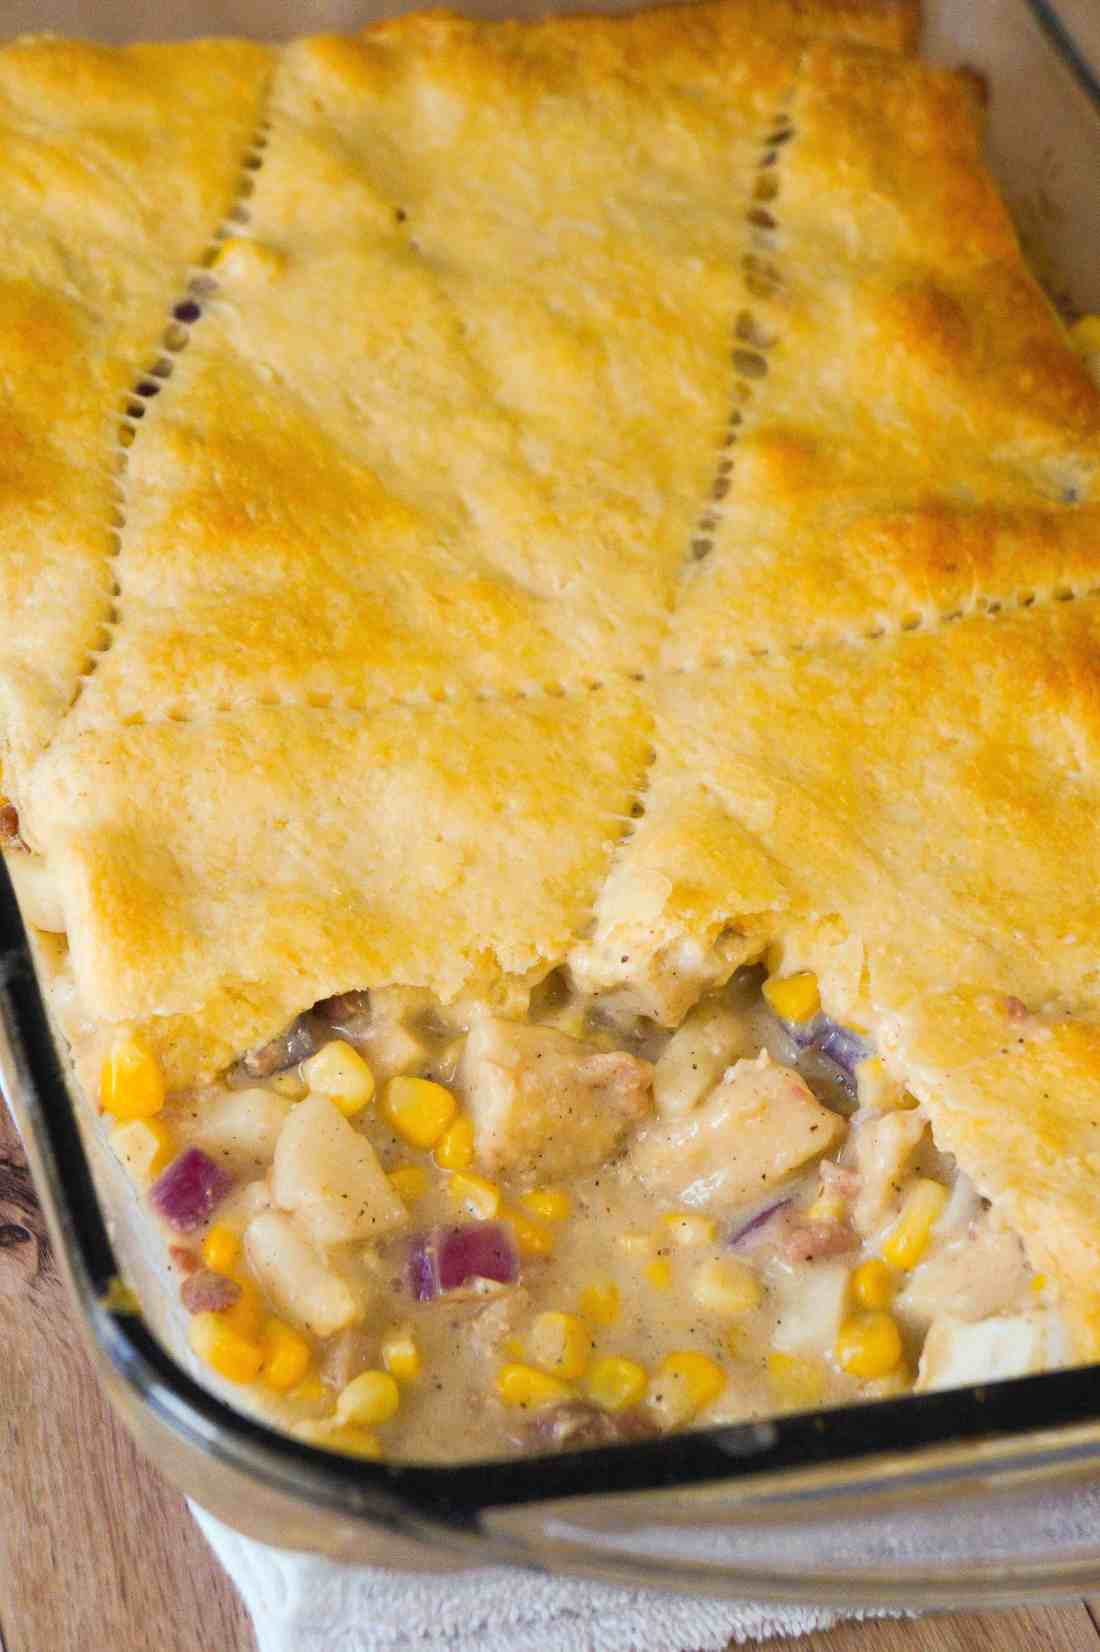 Bacon Chicken Pot Pie Casserole topped with Crescent Rolls is the perfect winter comfort food dish.